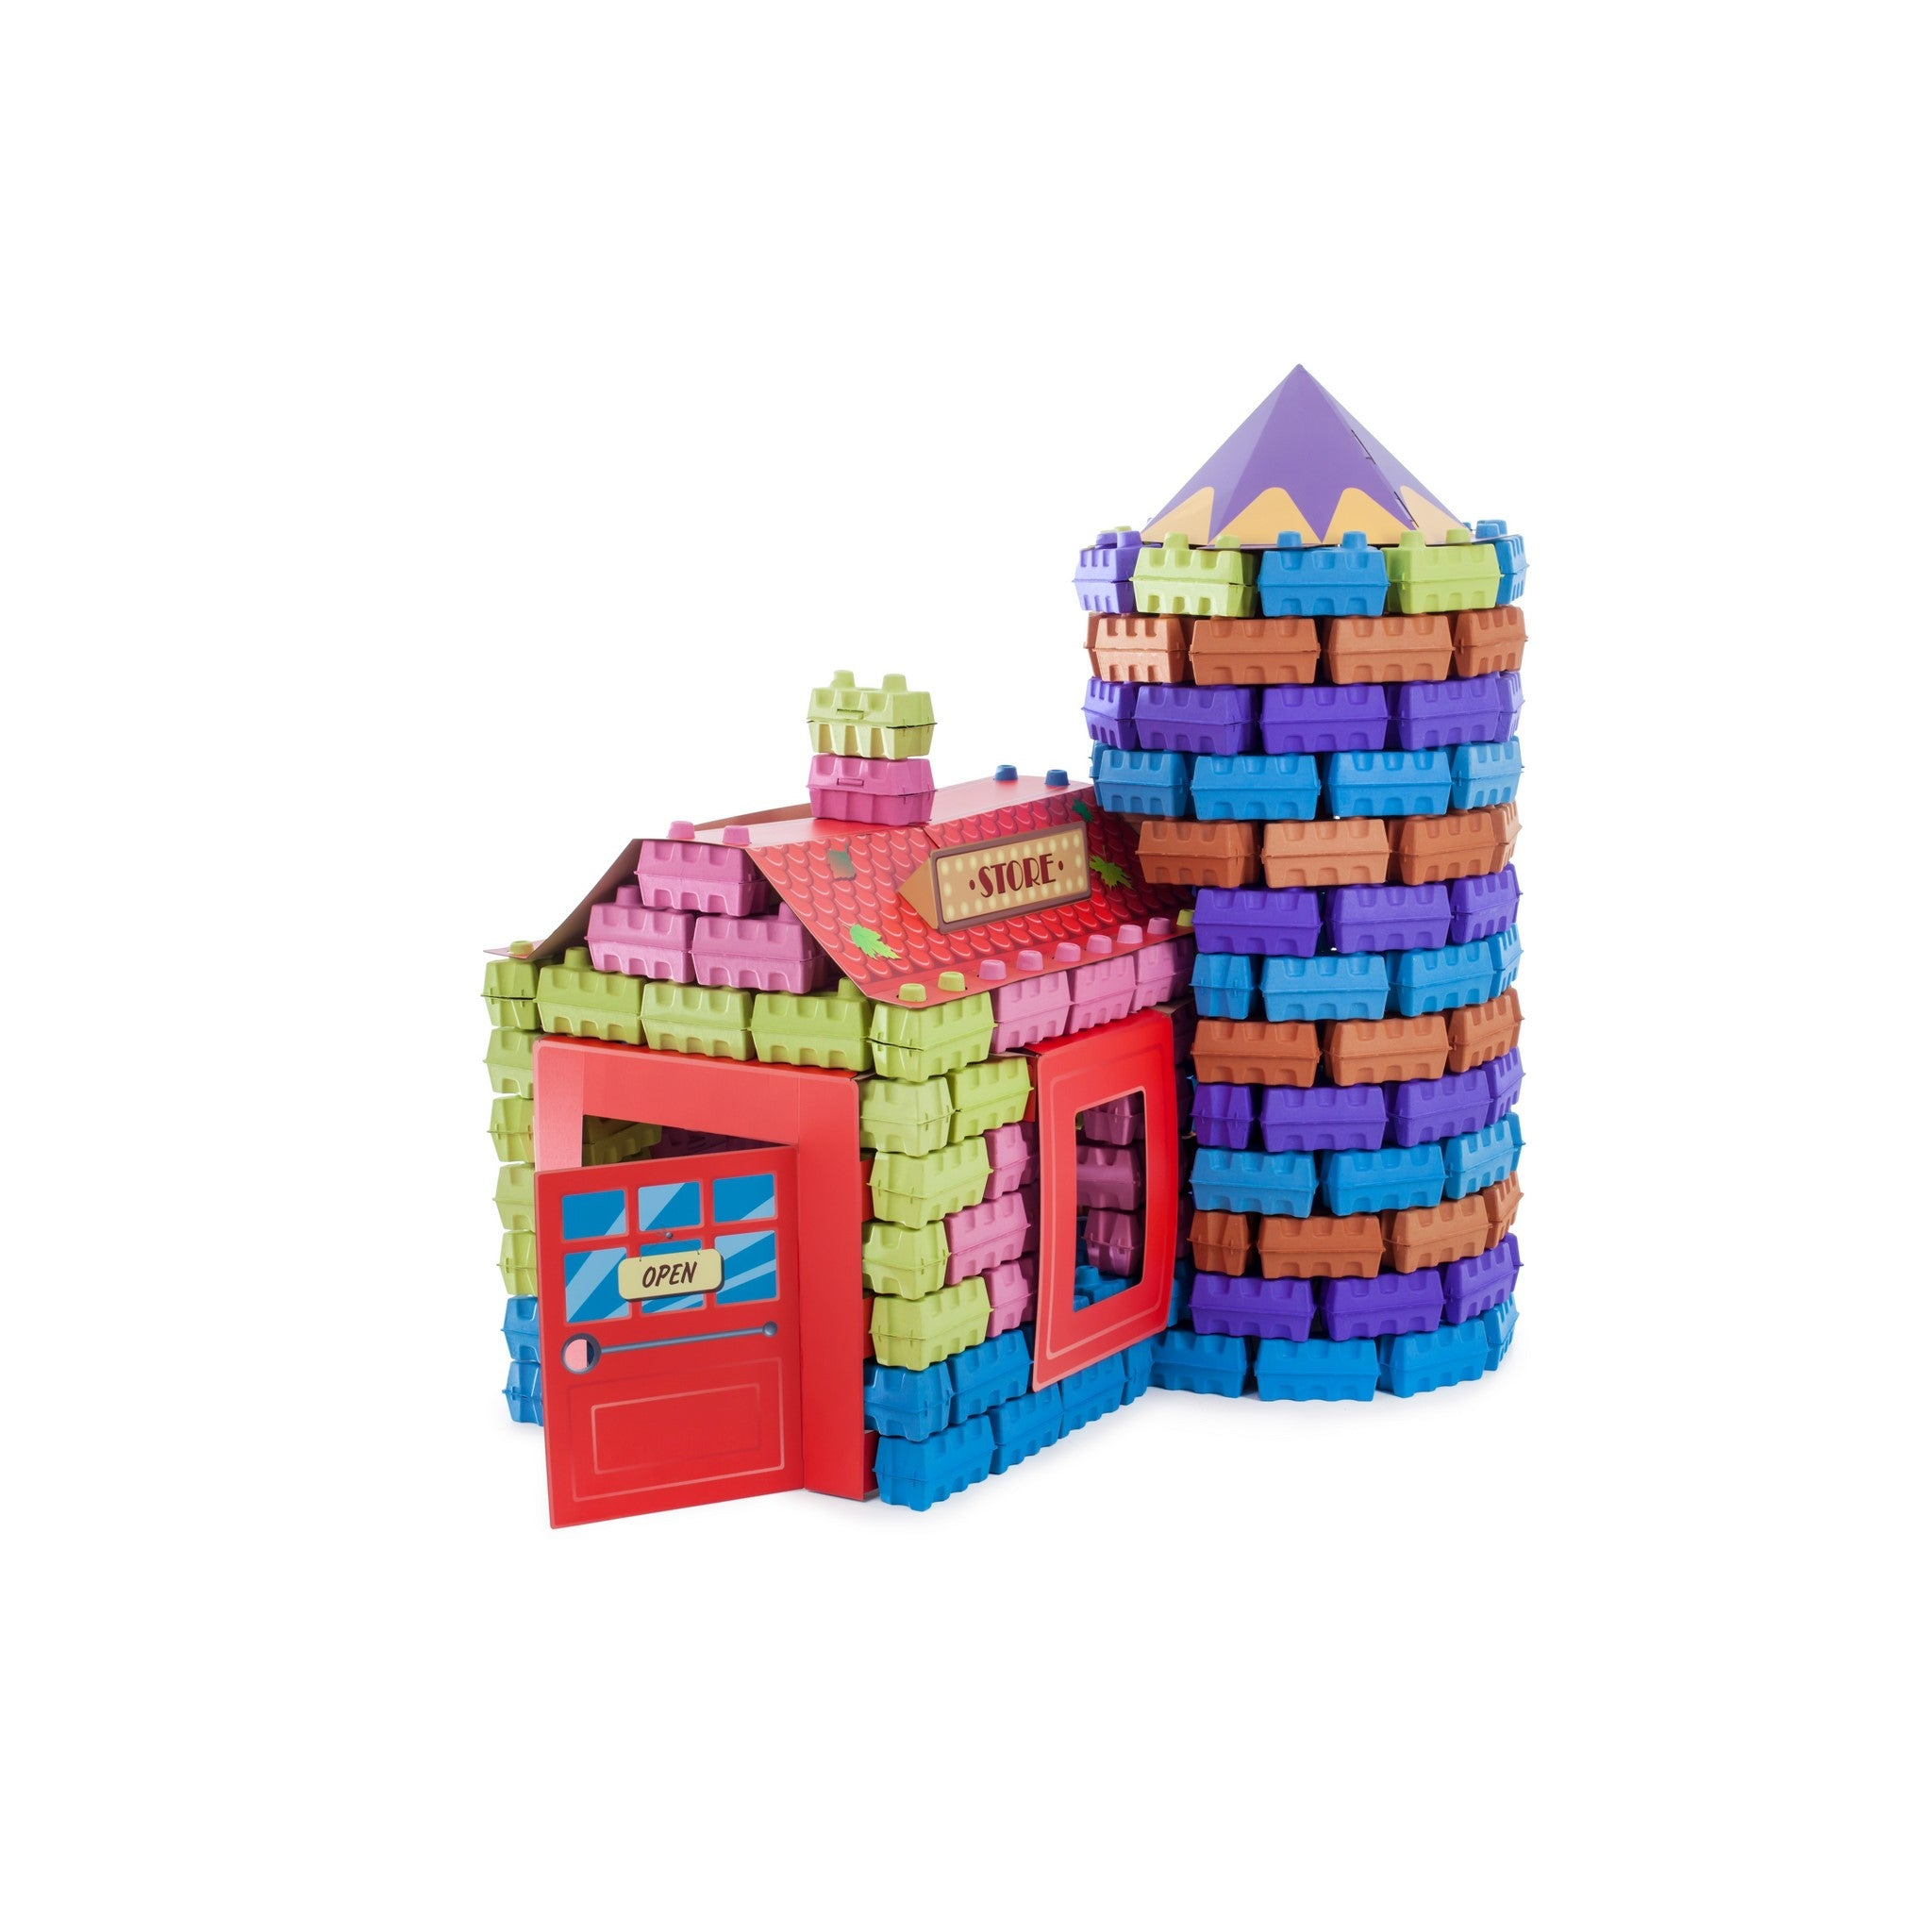 PAGL is a construction set of building blocks to build and play.